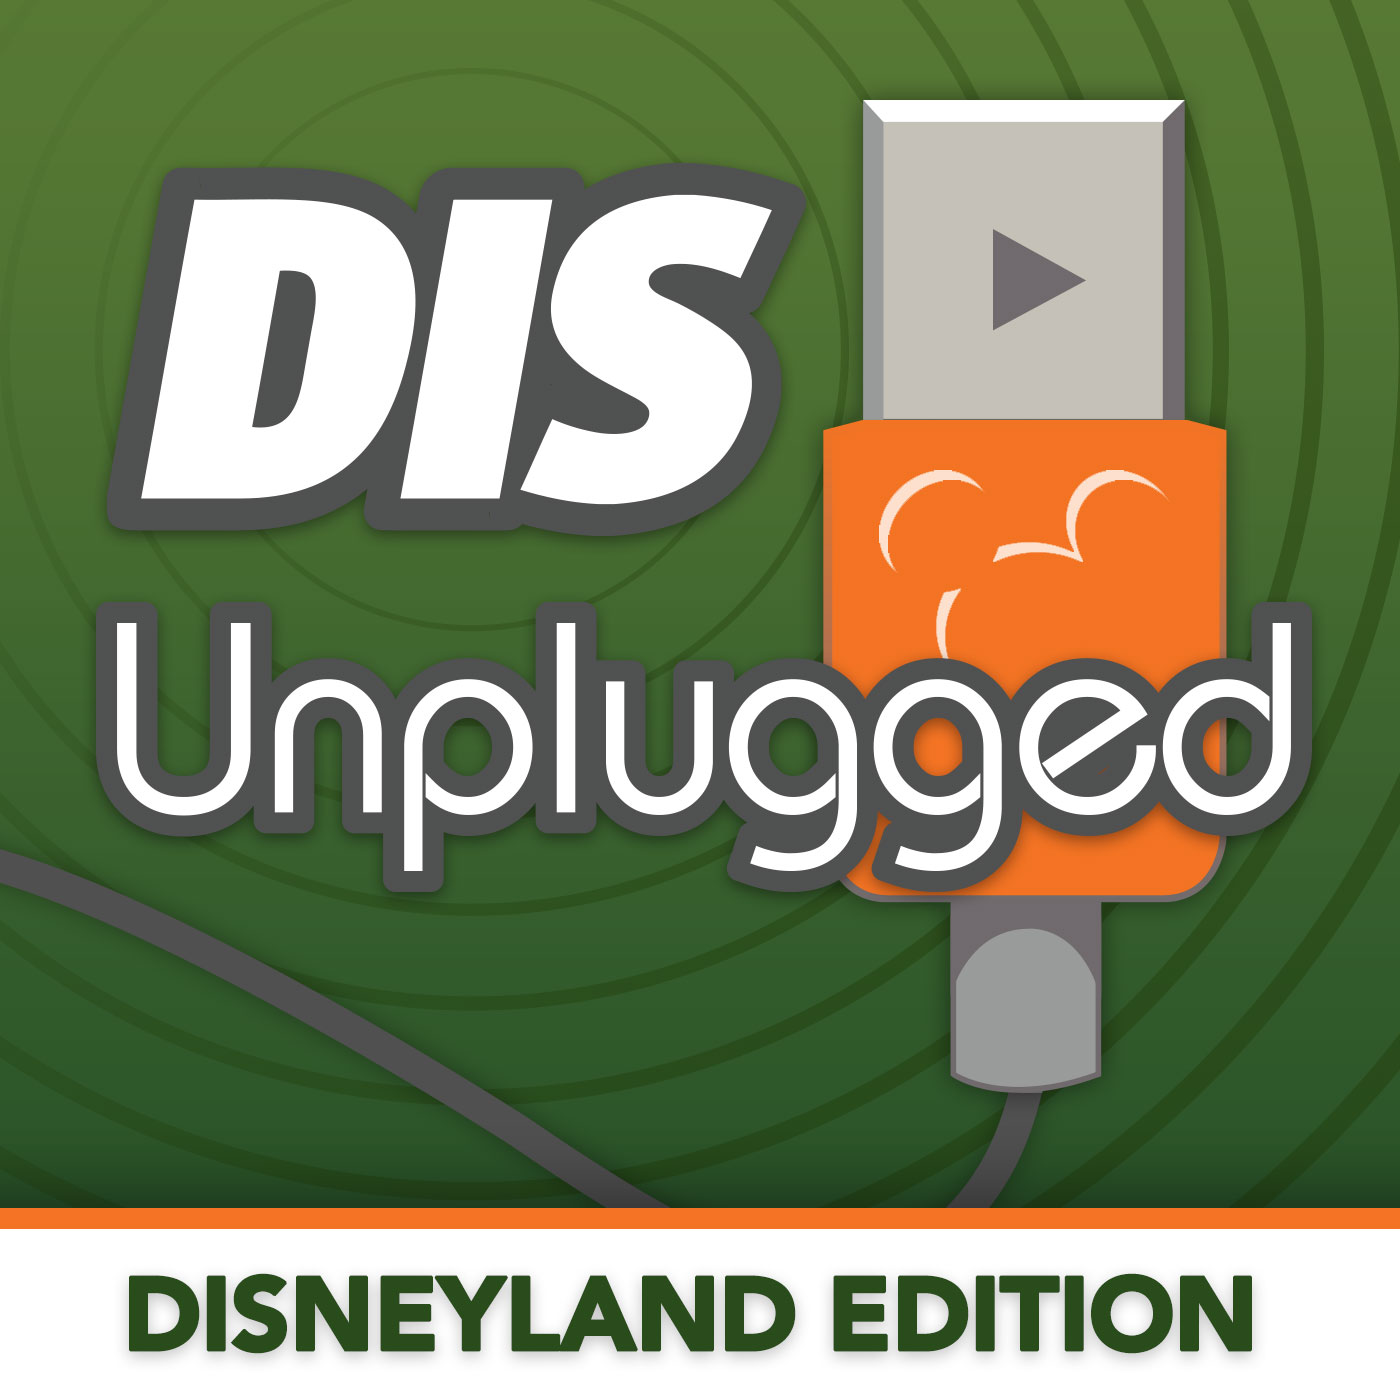 DIS Unplugged: Disneyland Edition